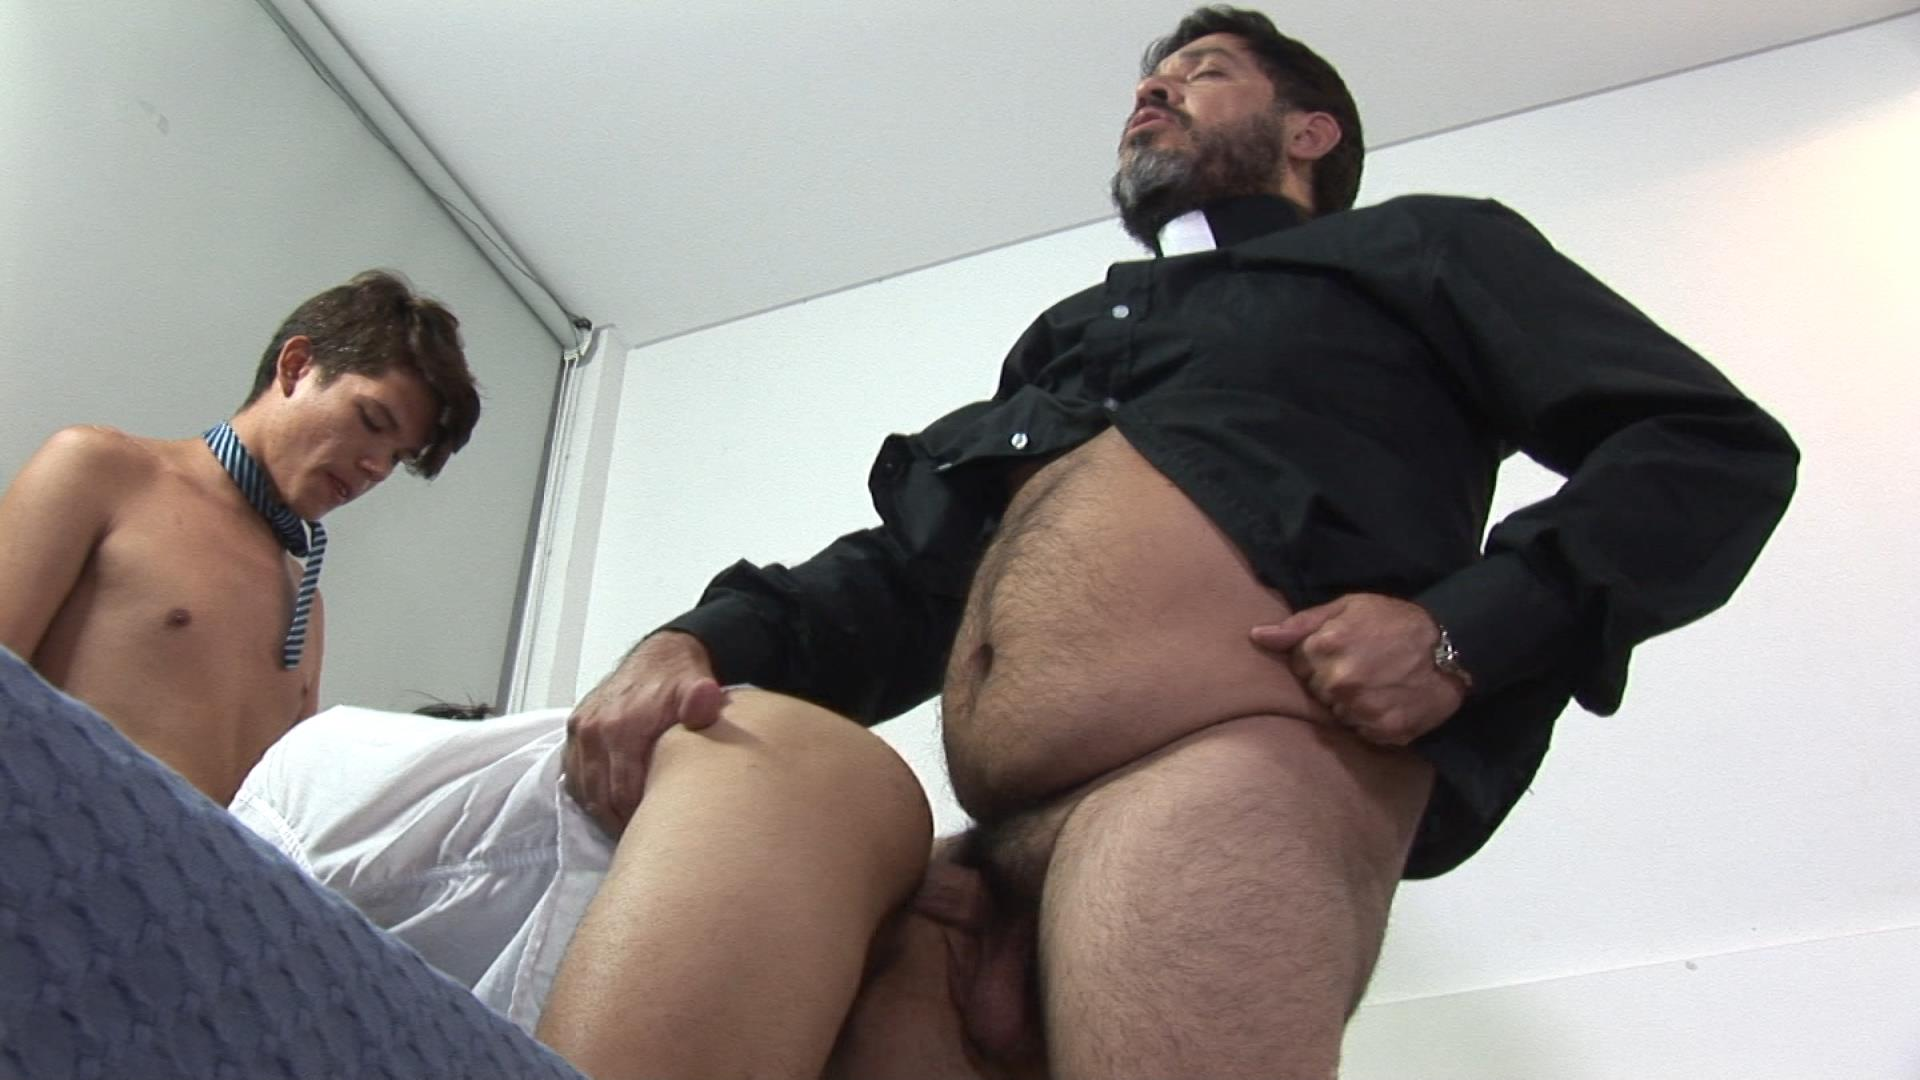 Bareback-Me-Daddy-Gay-Priest-Fucking-College-Students-19 Latin School Twinks Get Fucked By Their Older Catholic Priest